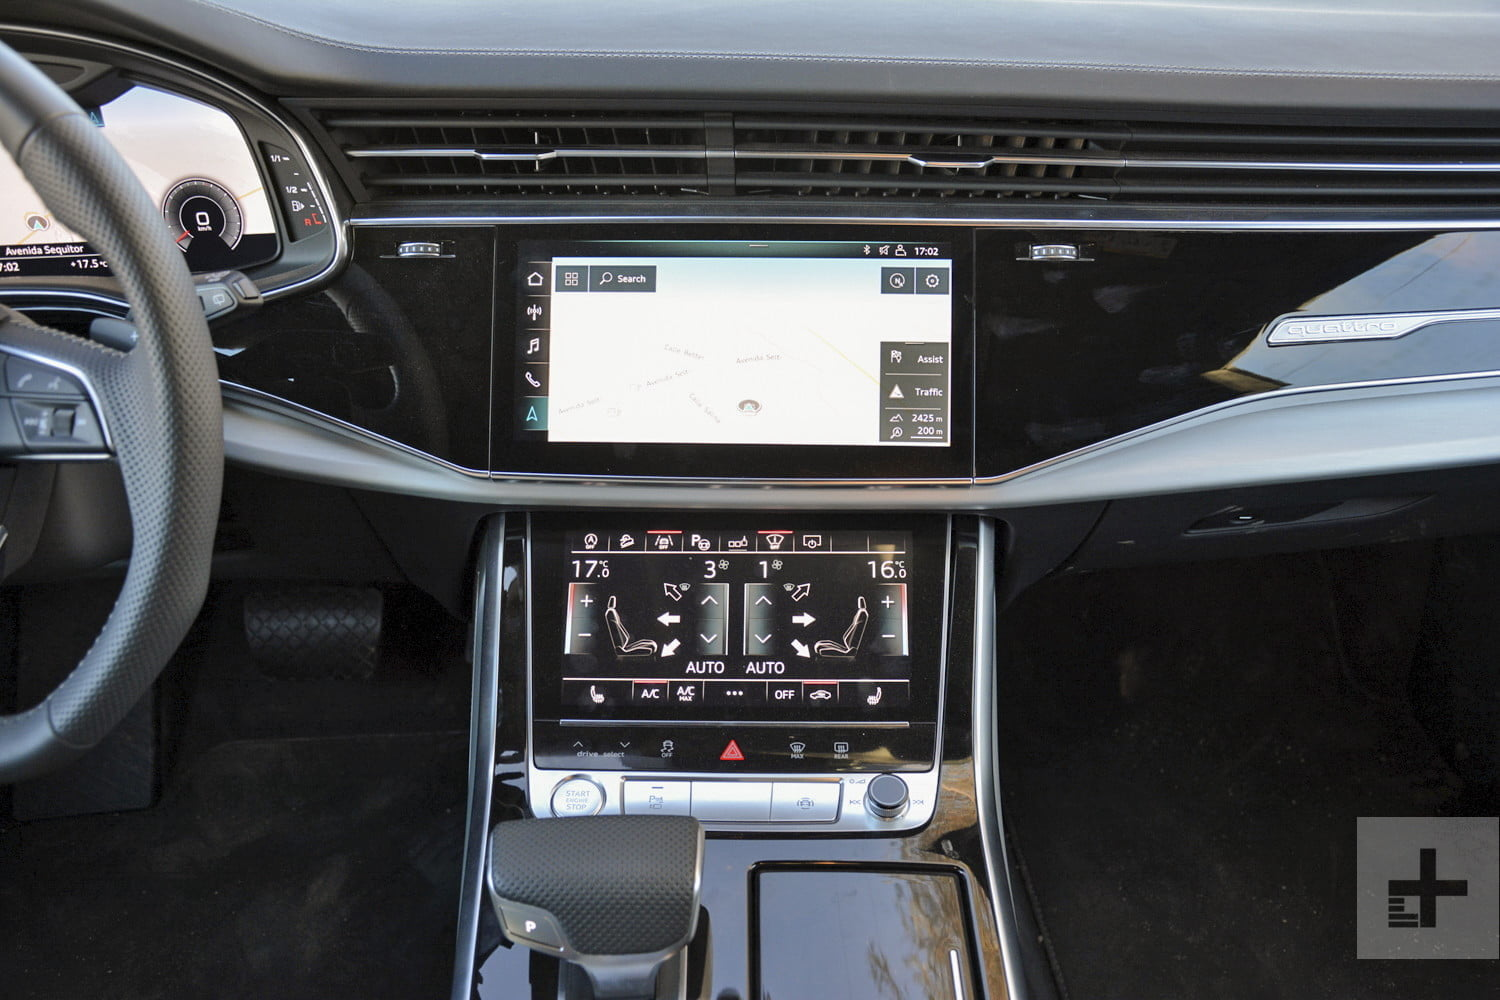 Audi A3 Carplay >> Audi MMI Touch Response Infotainment System Review ...